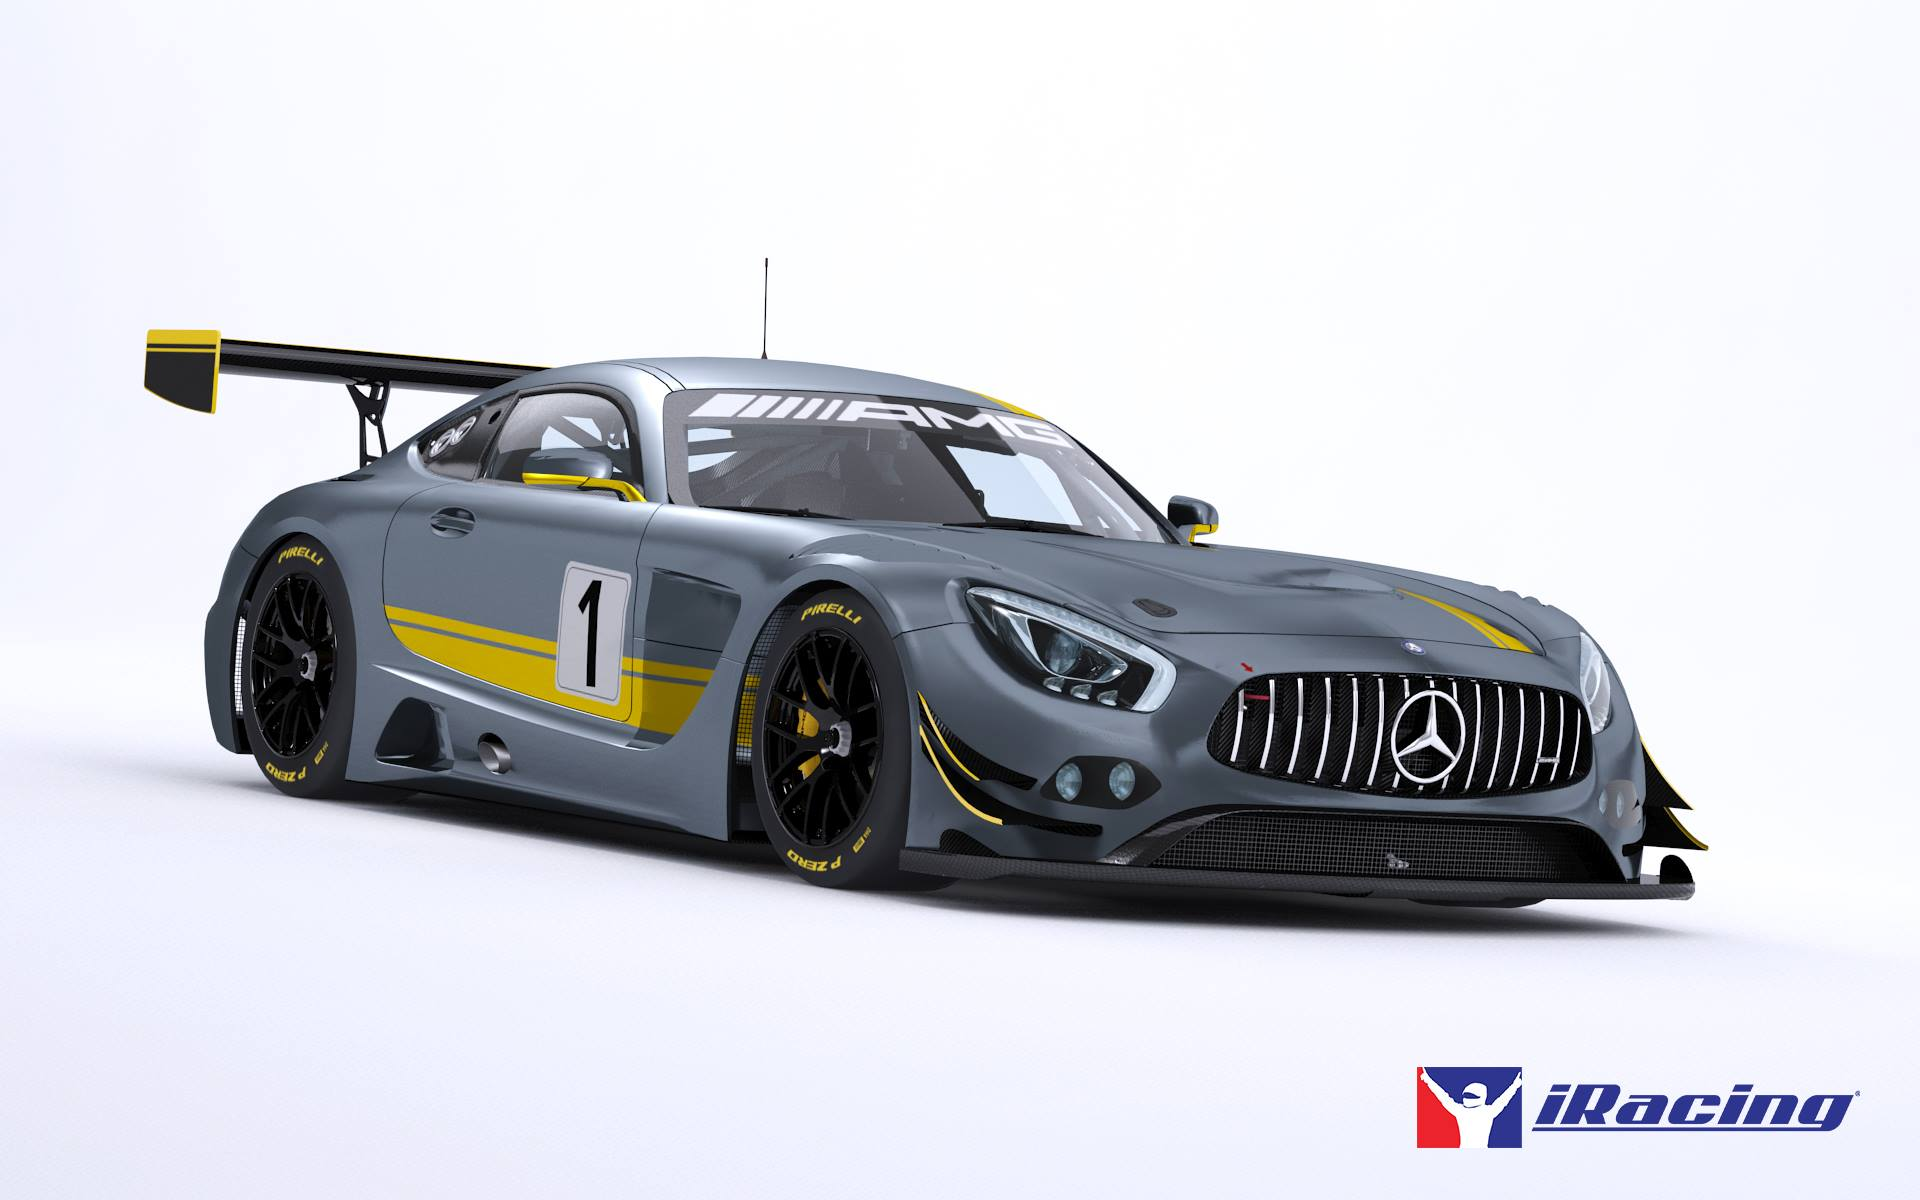 Project cars new mercedes amg gt3 previews virtualr sim racing - 25220202555_b72162f704_o